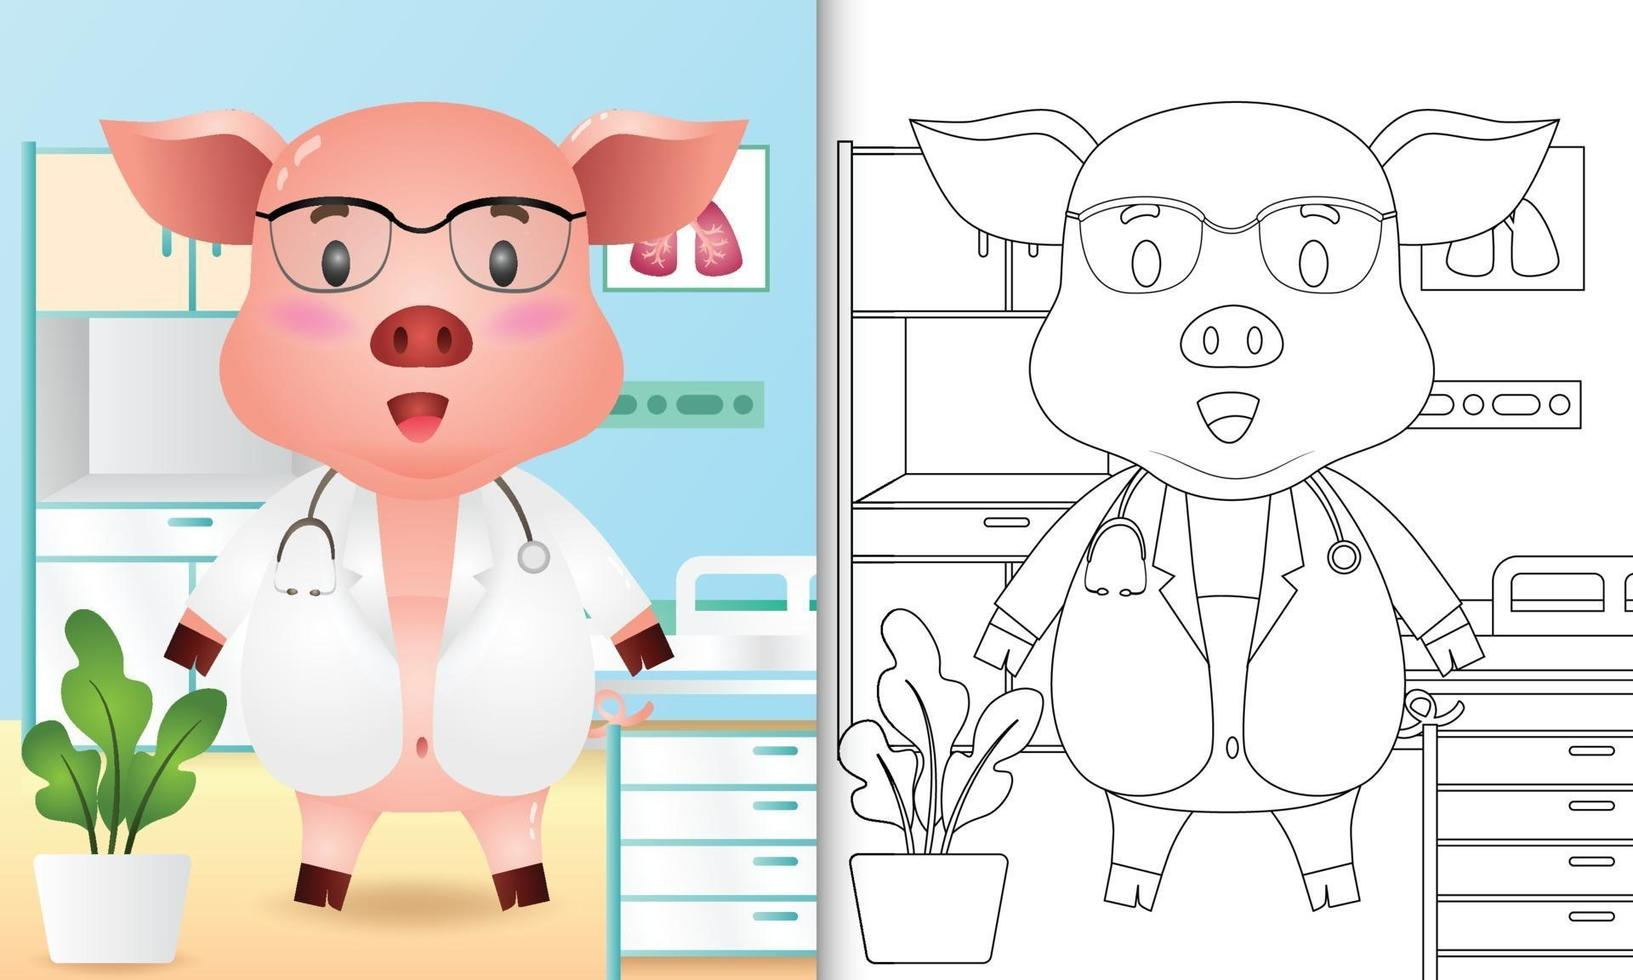 coloring book for kids with a cute pig doctor character illustration vector